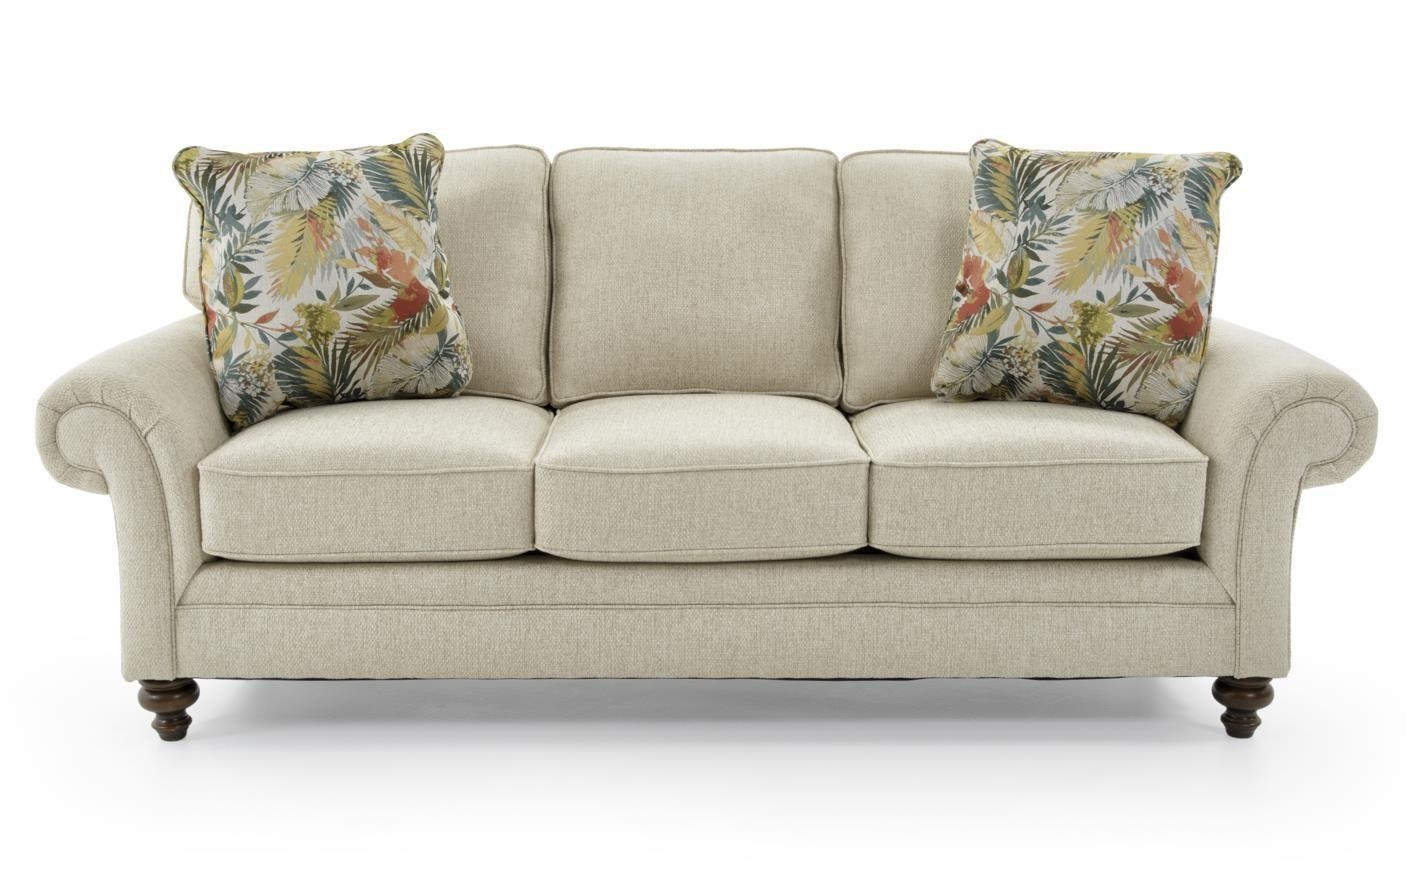 Broyhill Furniture Larissa Upholstered Stationary Sofa With Rolled In Broyhill Larissa Sofas (Image 3 of 20)